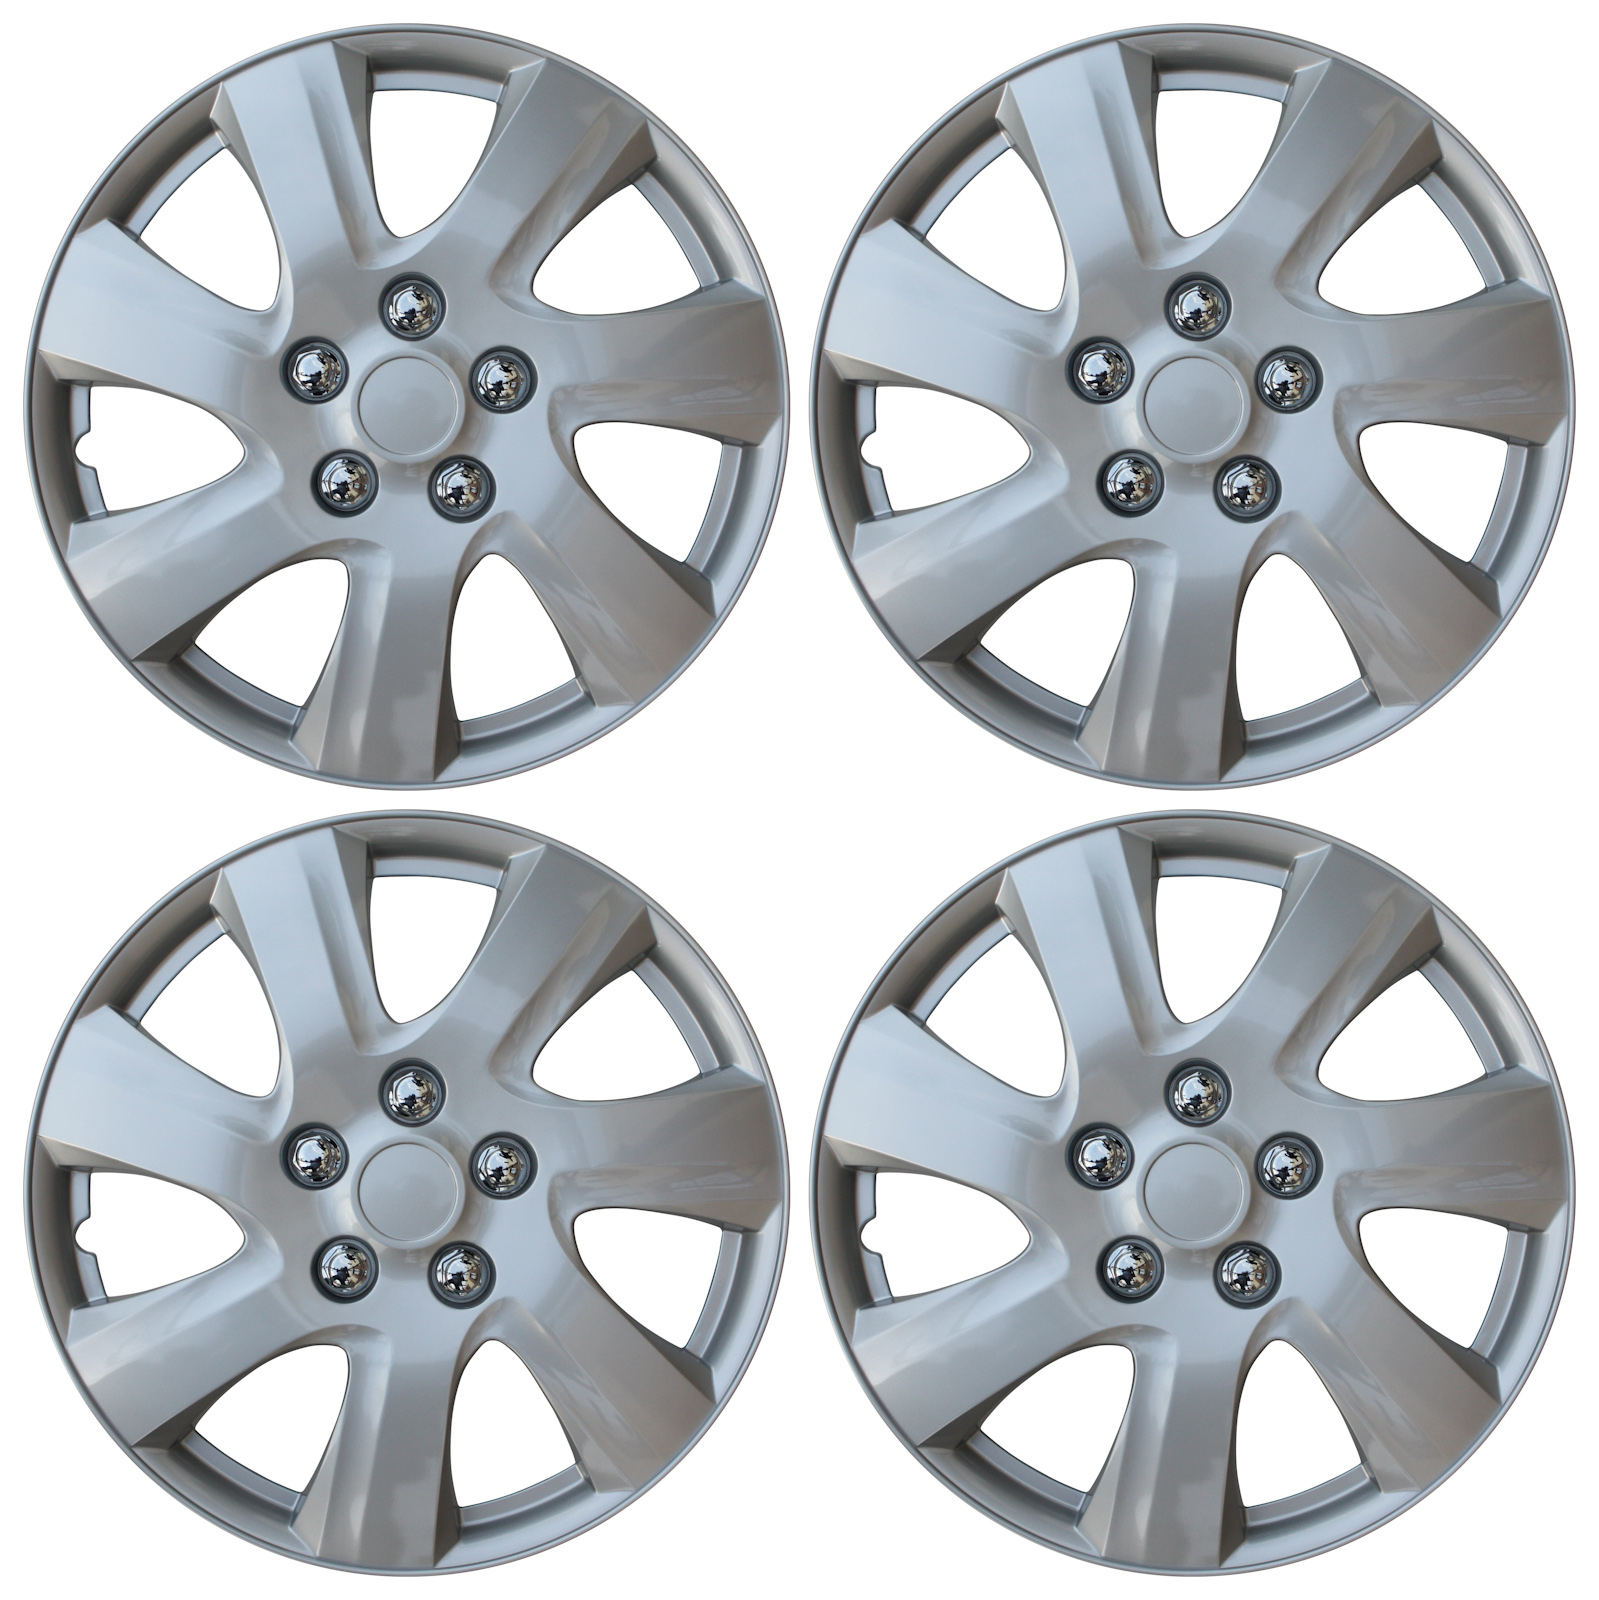 "Hubcaps For 2008 Toyota Corolla: NEW SET Of 4 Hub Caps Fits TOYOTA CAMRY 15"" Universal ABS"